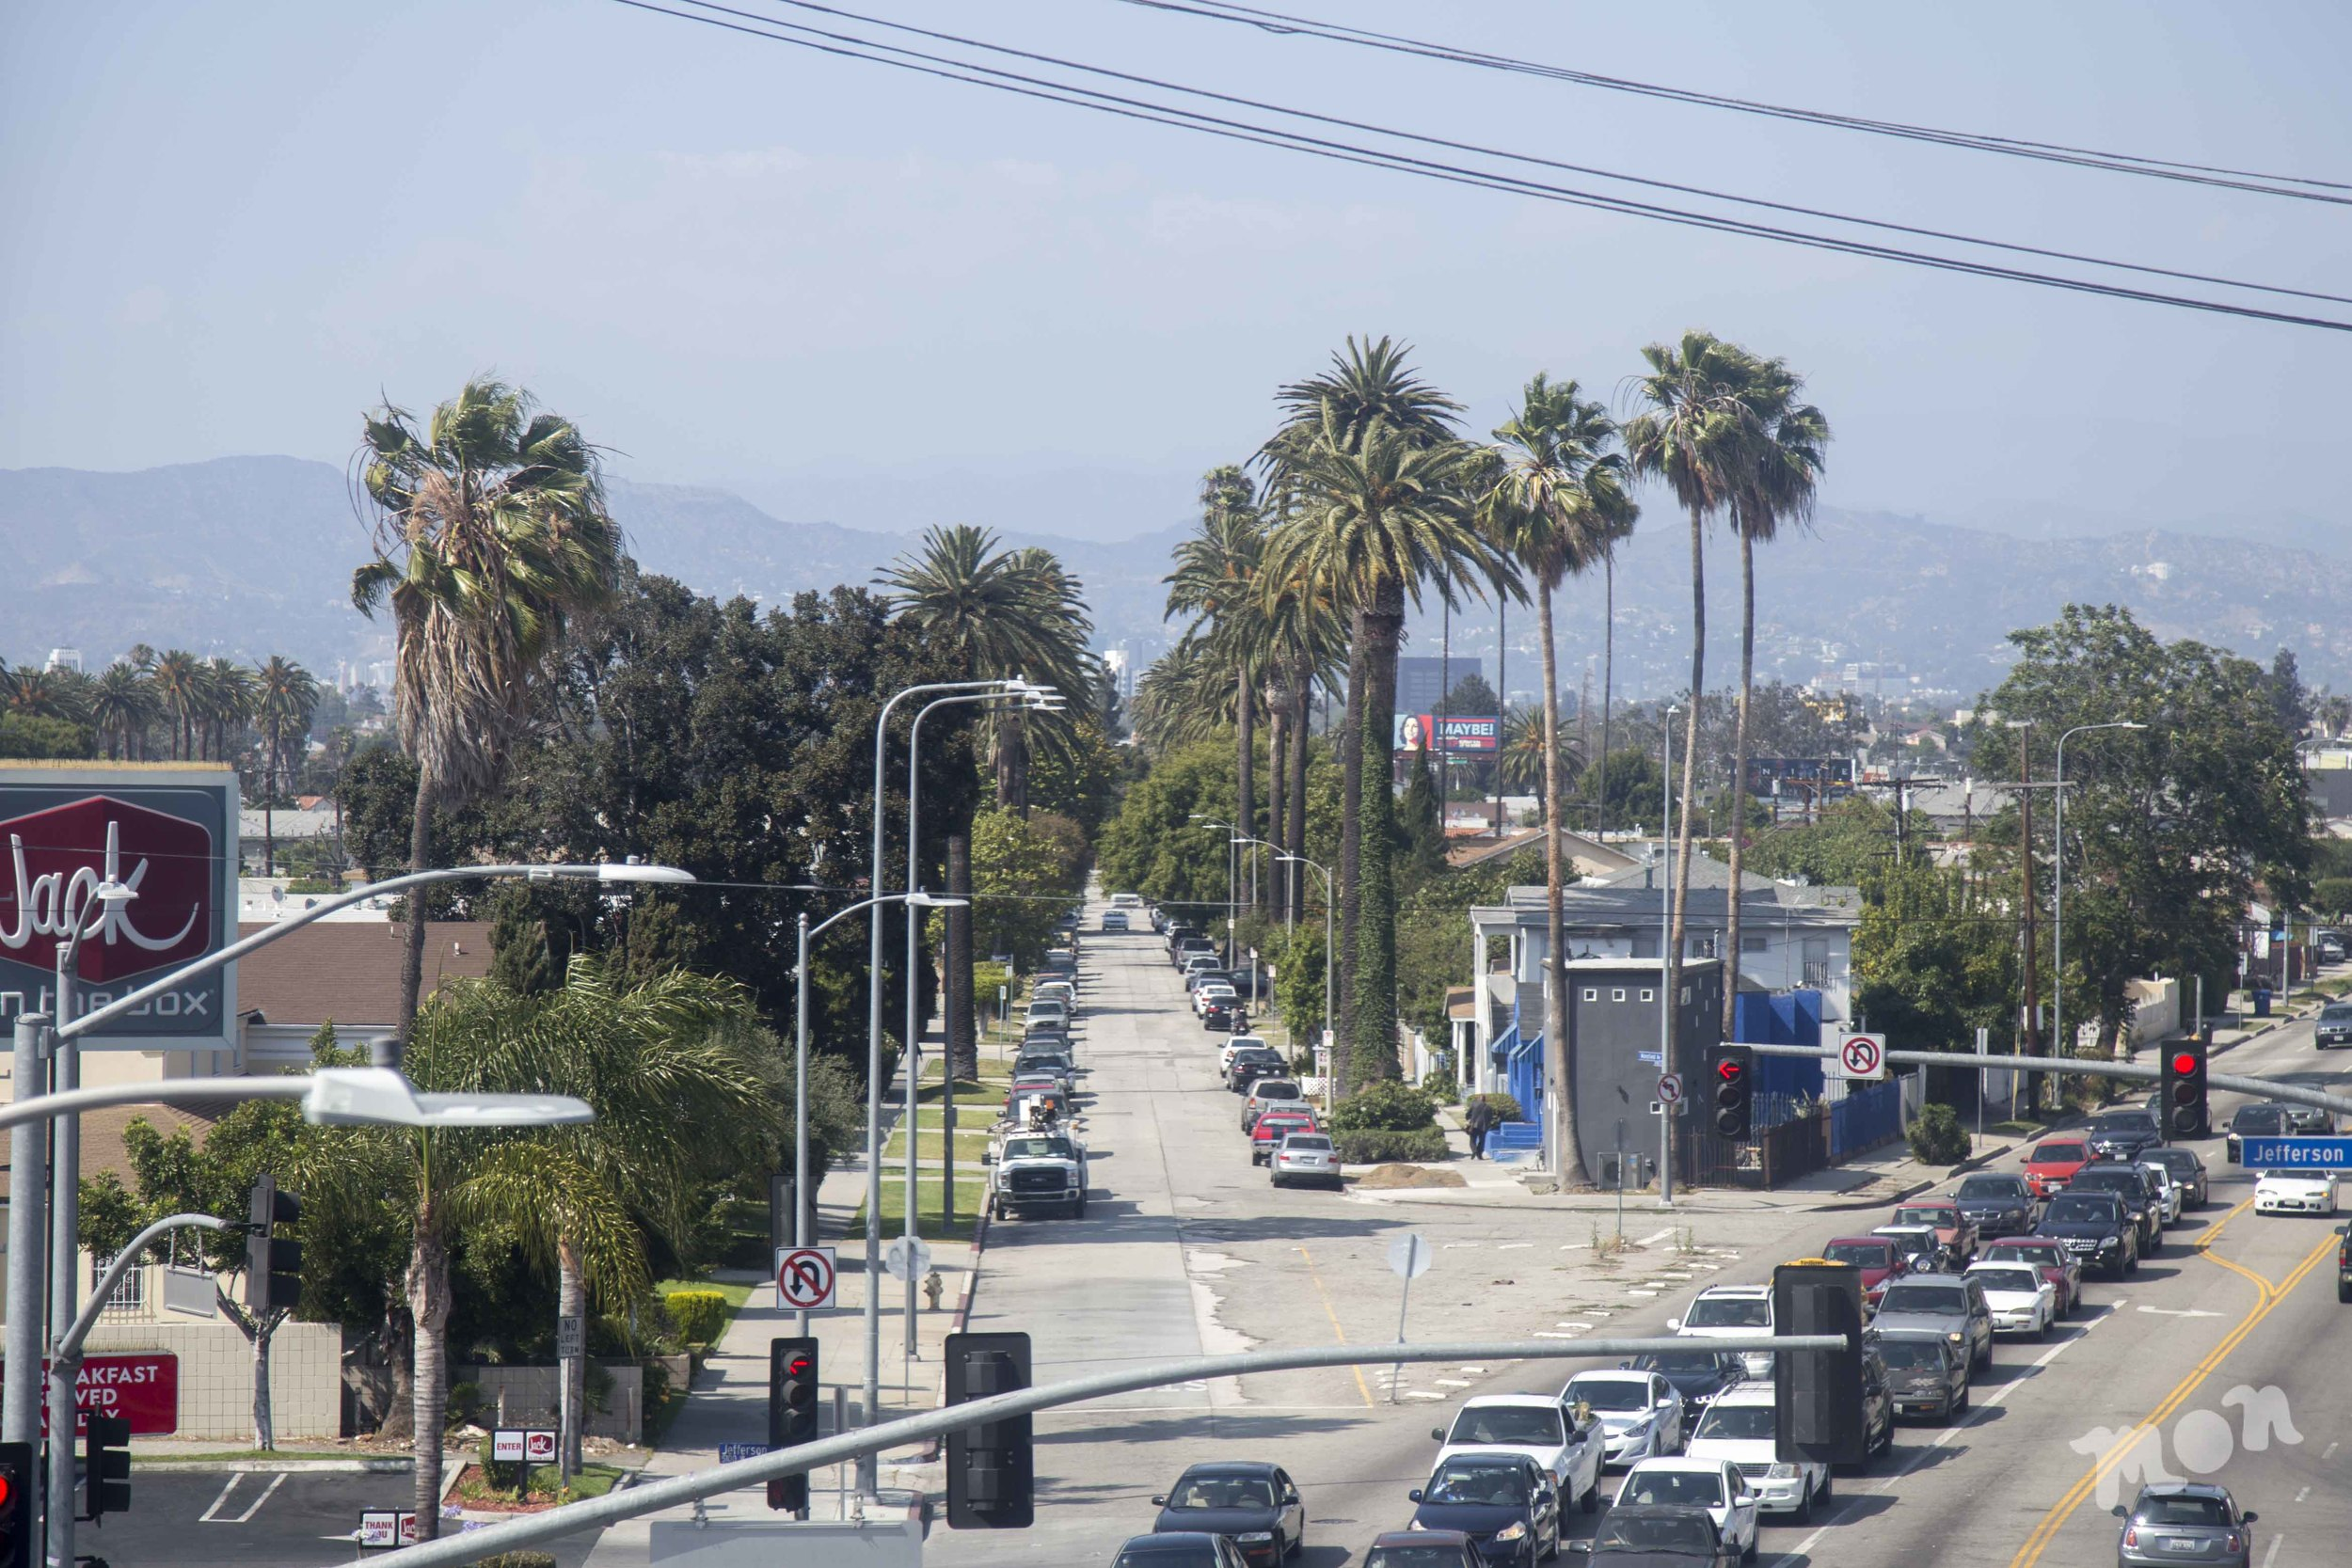 View from the La Cienega station off the Expo Line.